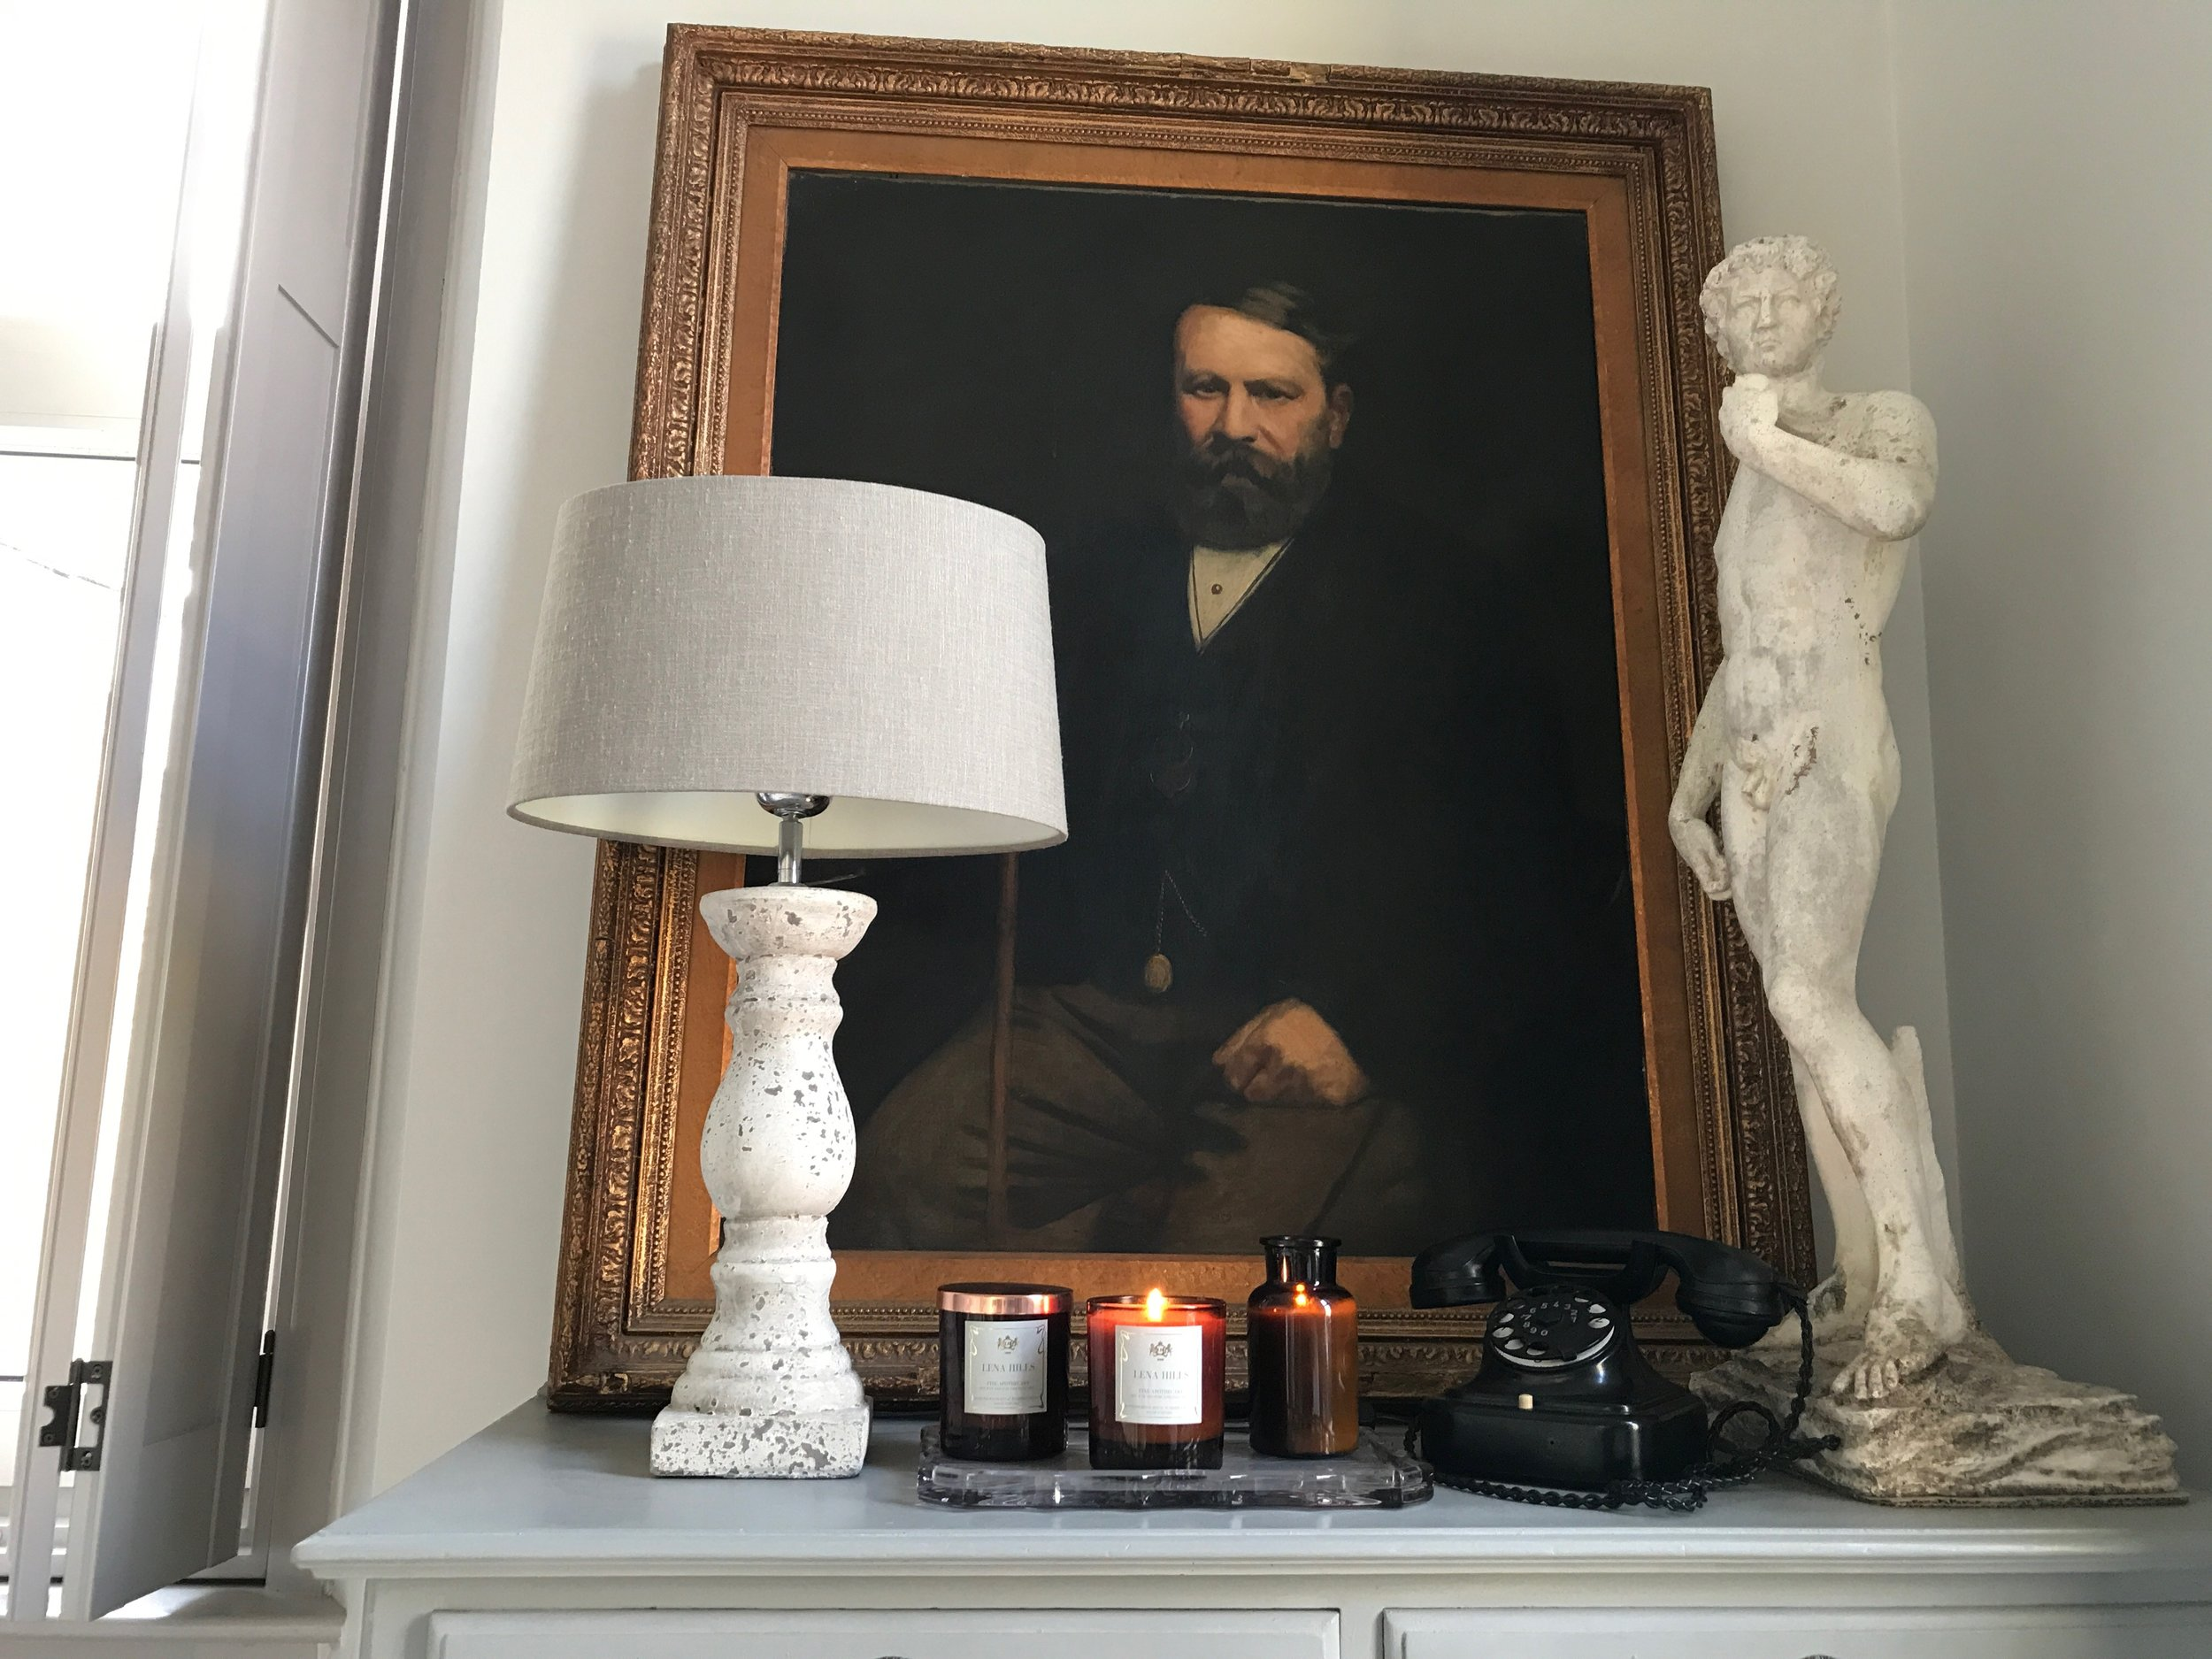 Vintage inspired artisan candles - Turn back time to life at a slower pace, with quality, pride and craftsmanship as standard. The essence of life and aroma captured in a candle.